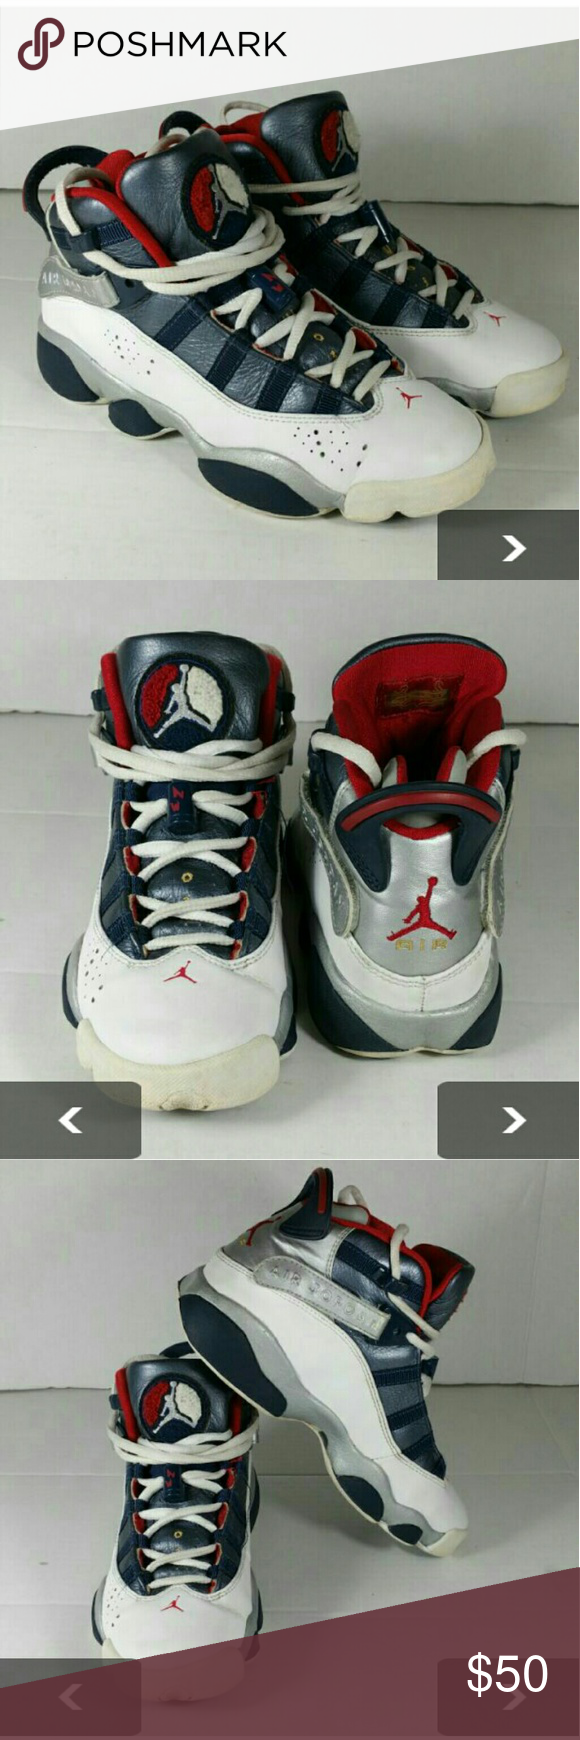 046de8492ce7 ... new zealand air jordan 6 rings women youth shoes very clean inside out  this is a